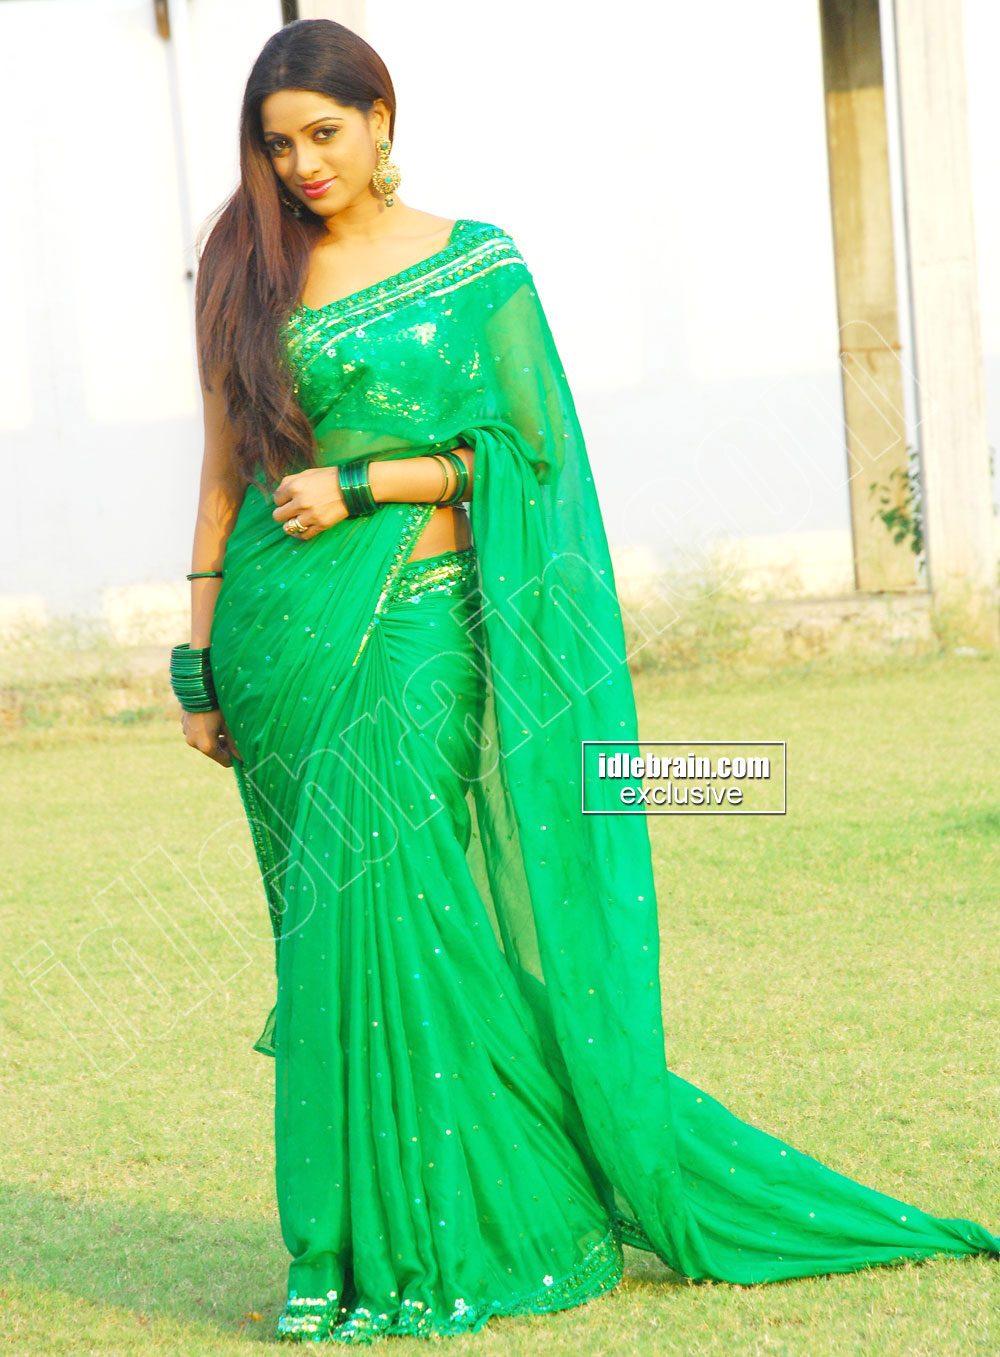 Actress Udaya Bhanu in Geen Designer Saree Photo Gallery